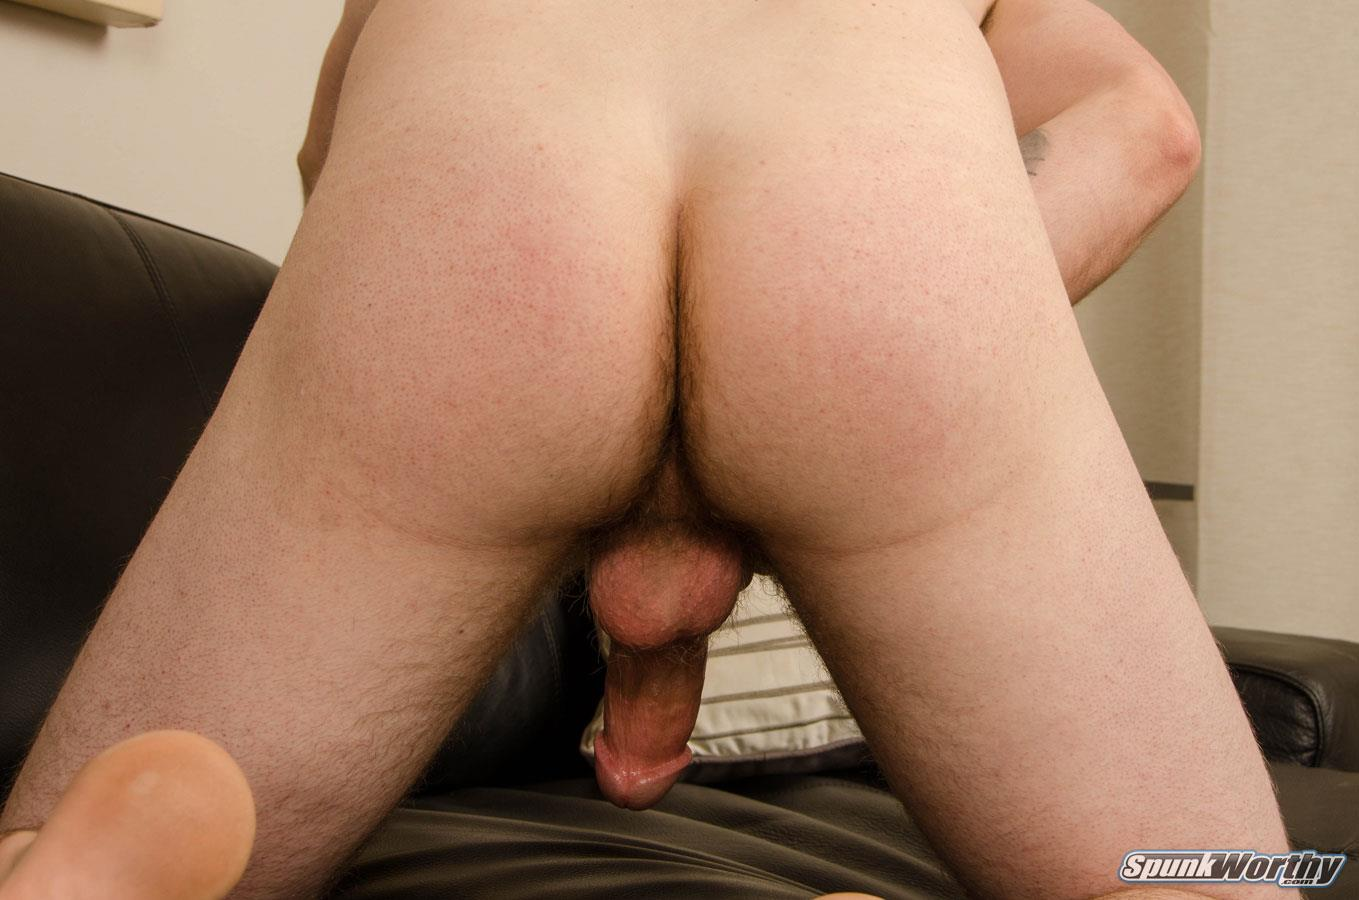 SpunkWorthy-Sutter-Straight-Naked-Sailor-Jerking-Off-Big-Cock-13 Tall Straight Navy Sailor Shoots A Big Load From His 8